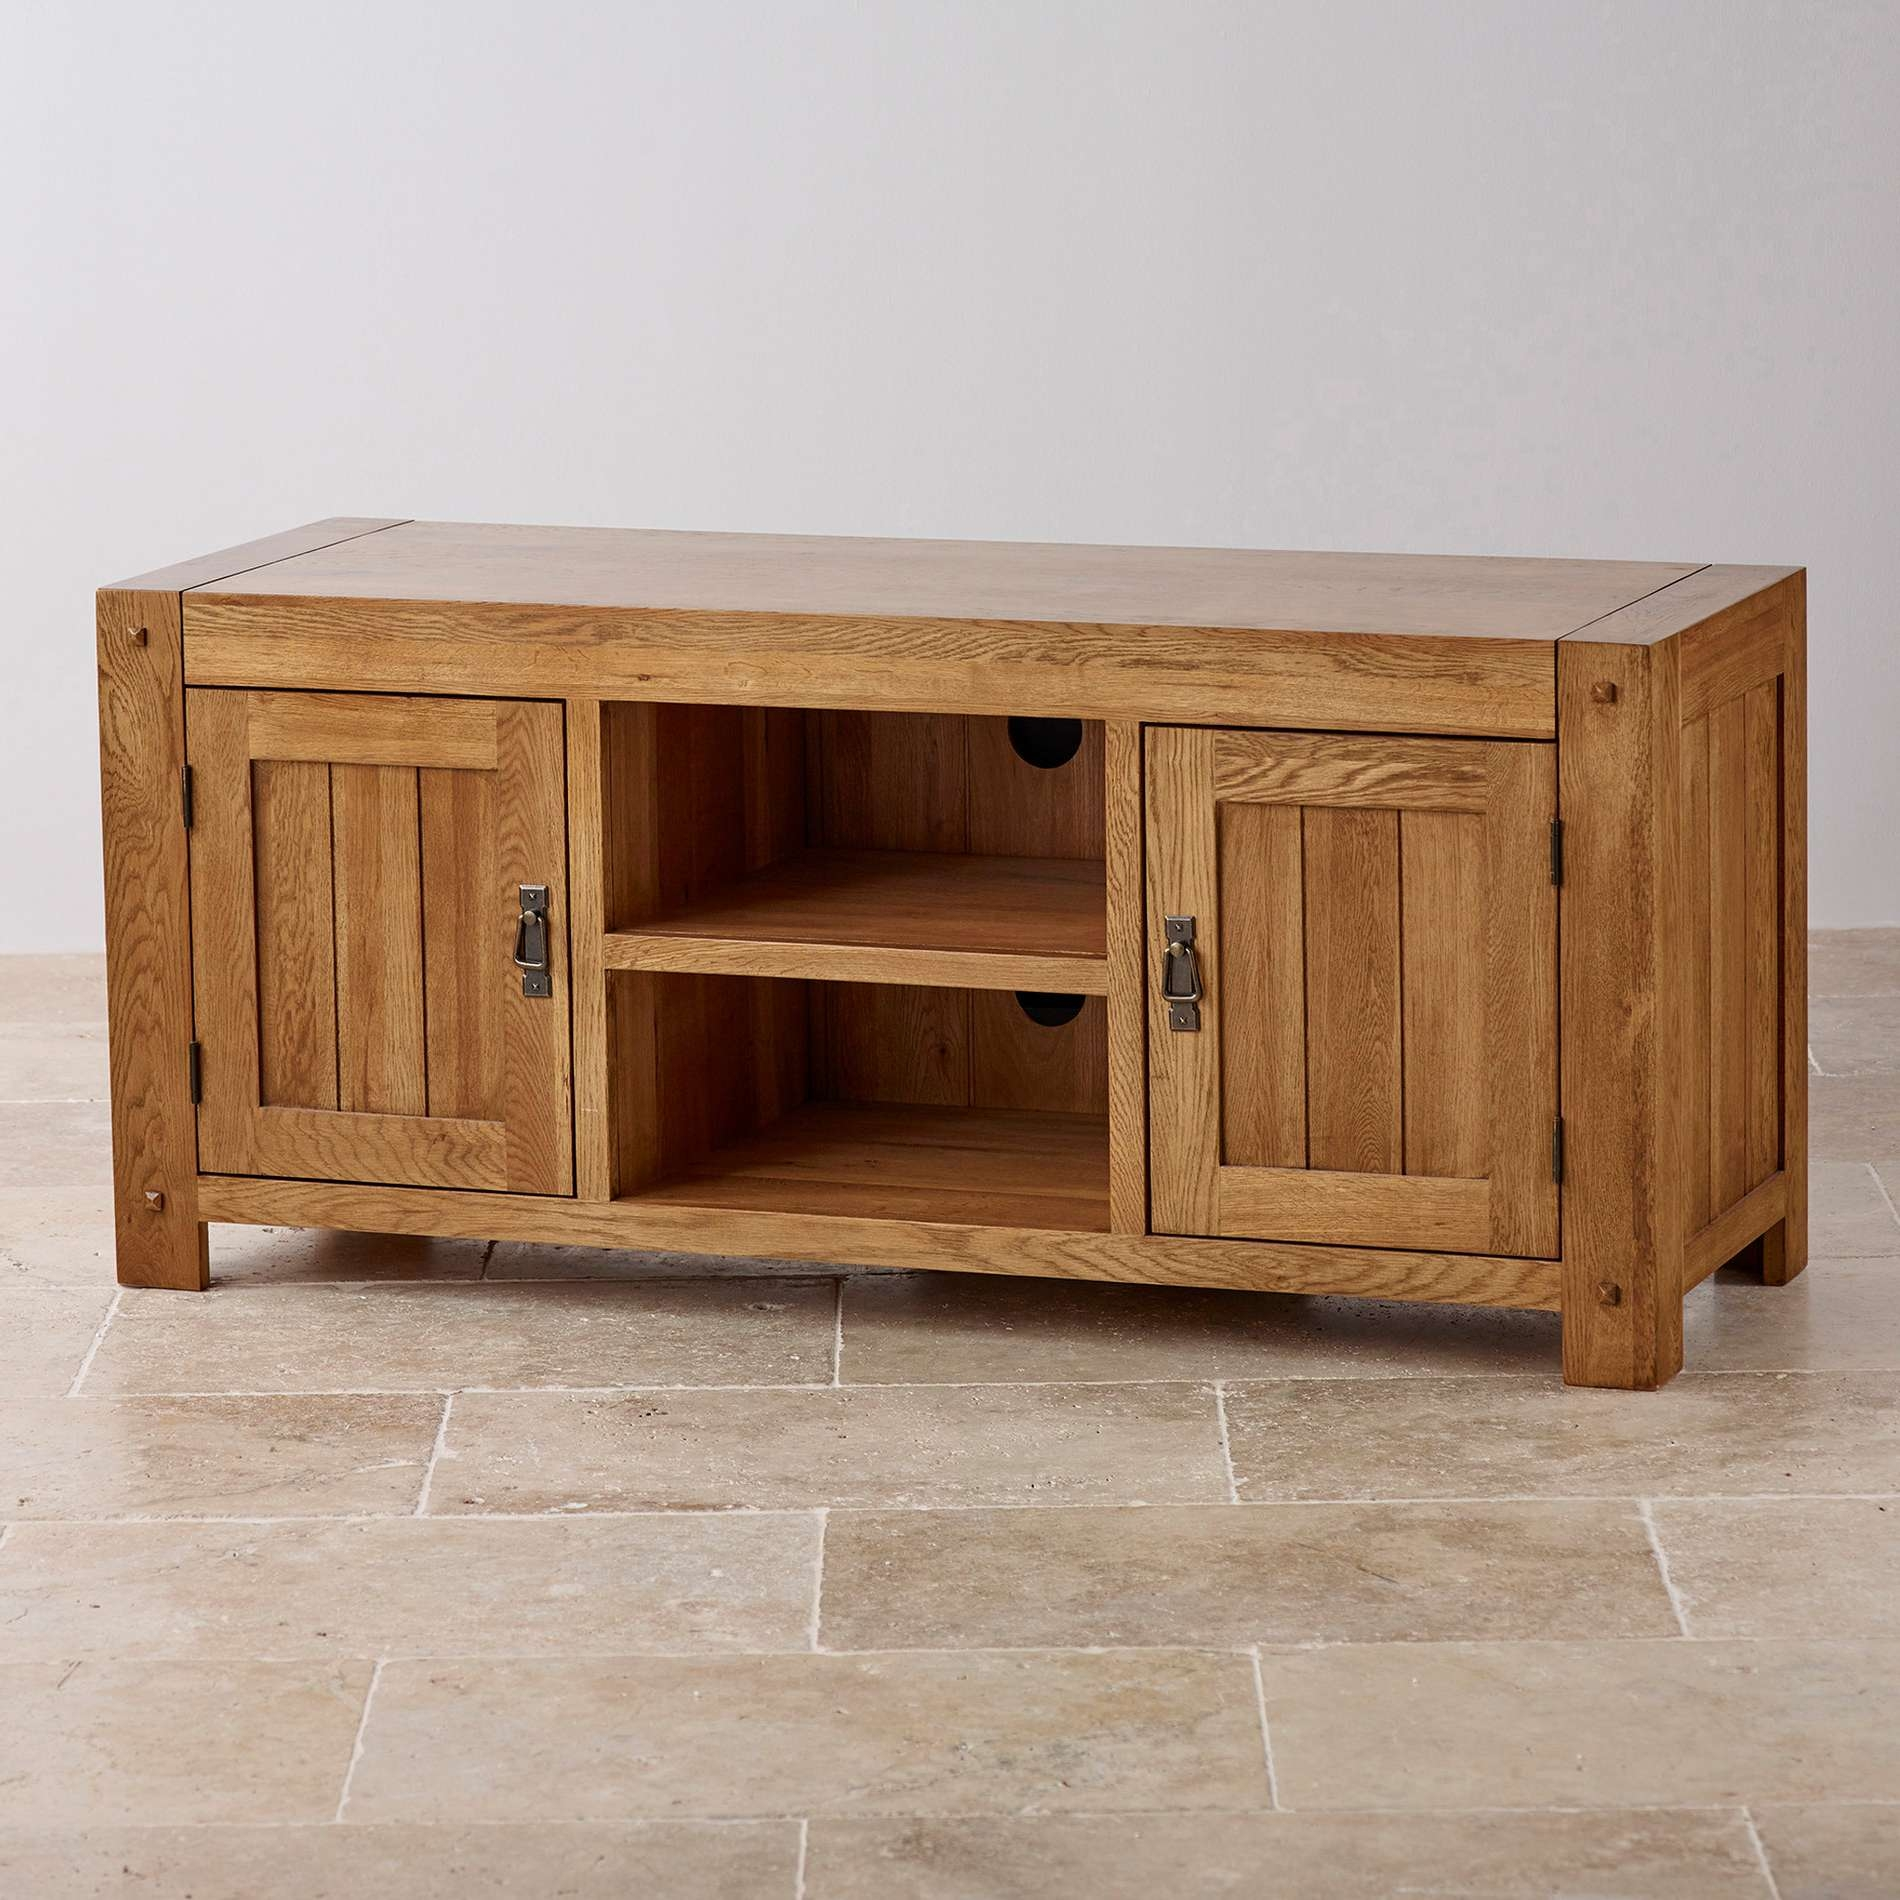 Tv Cabinets | Mango, Painted & Oak Tv Units | Oak Furniture Land In Solid Oak Tv Cabinets (View 3 of 20)